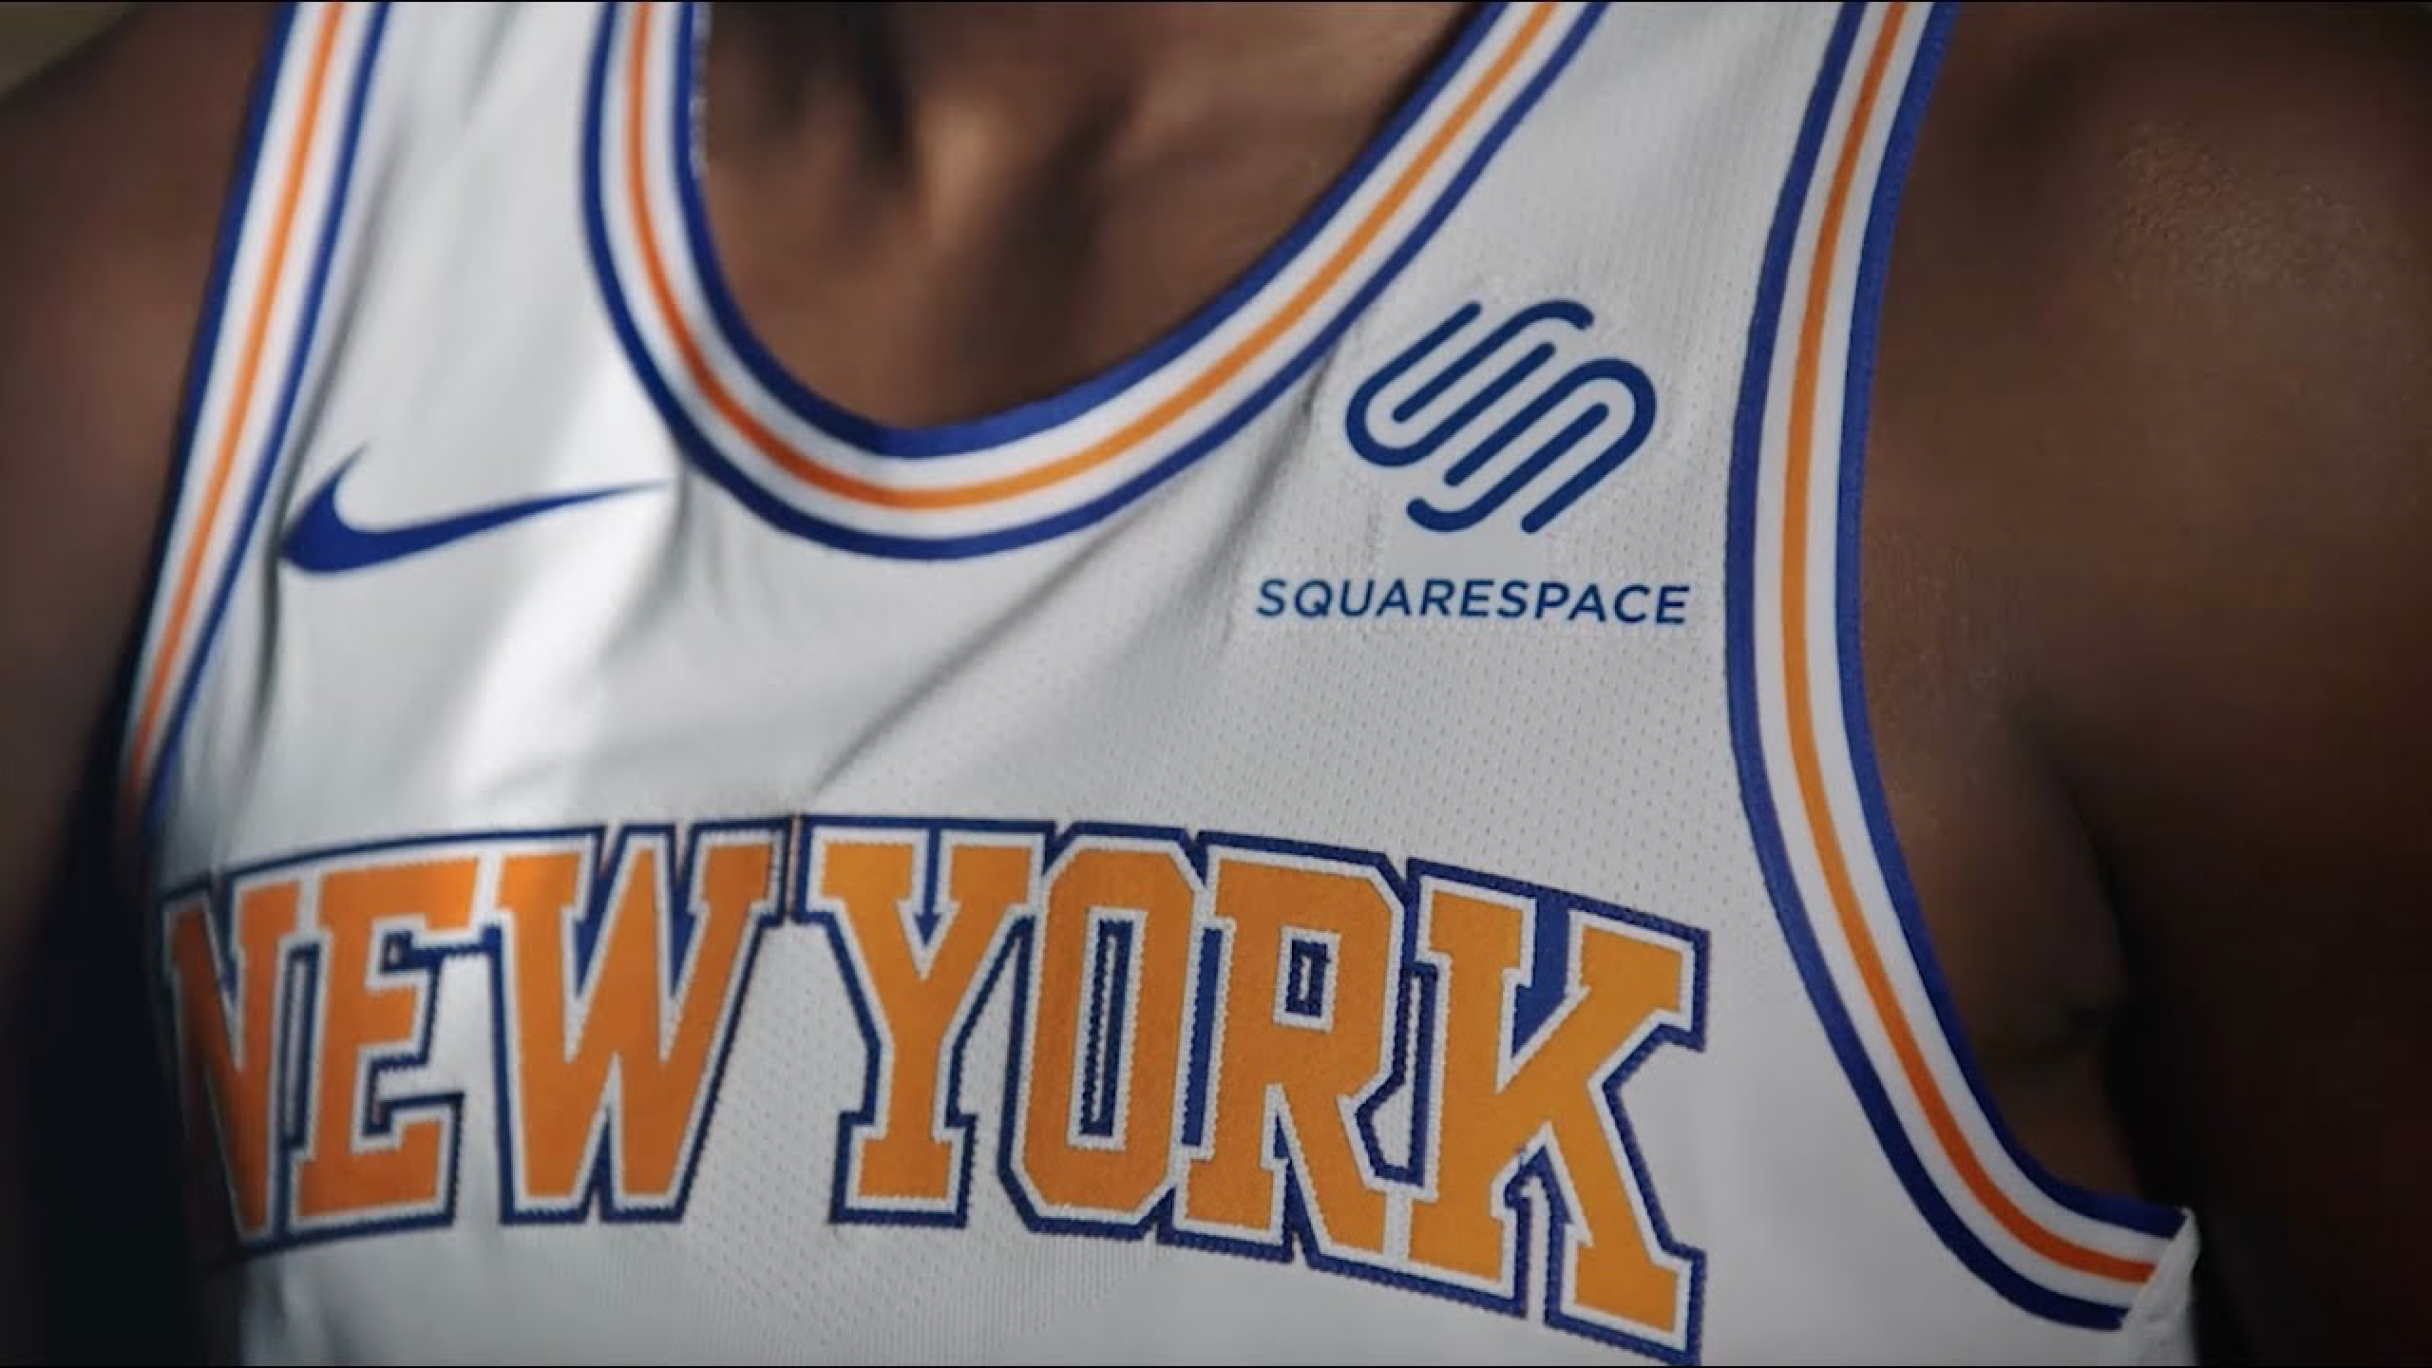 A New York Knicks jersey with the Squarespace logo